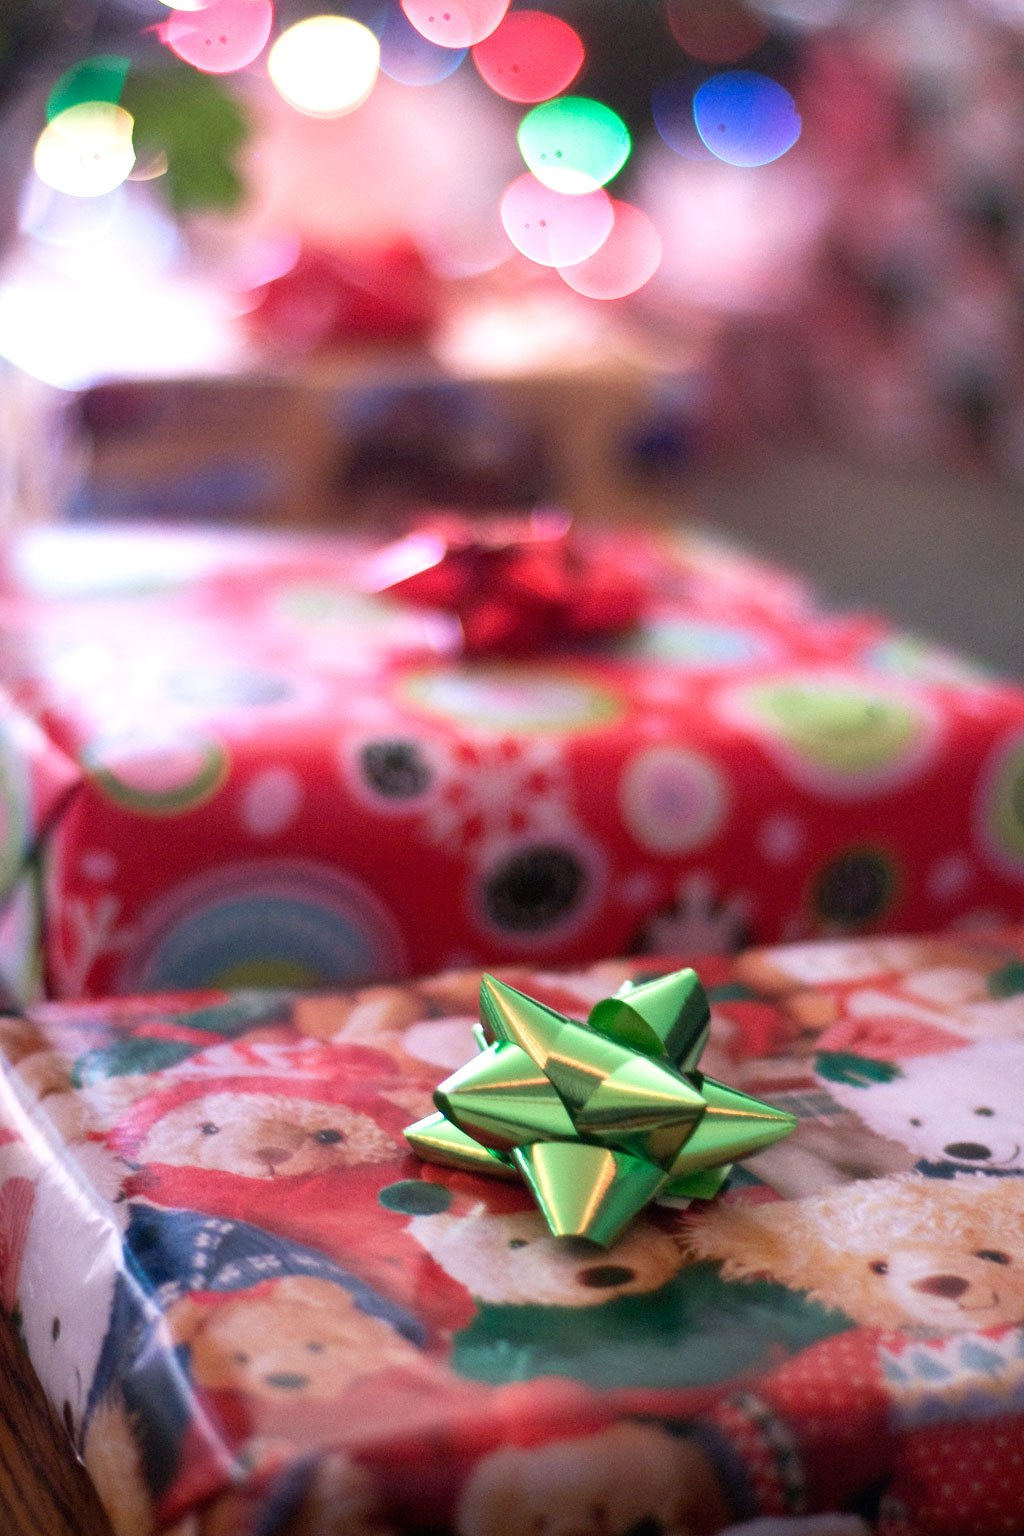 a photograph of three wrapped Christmas presents CC BY